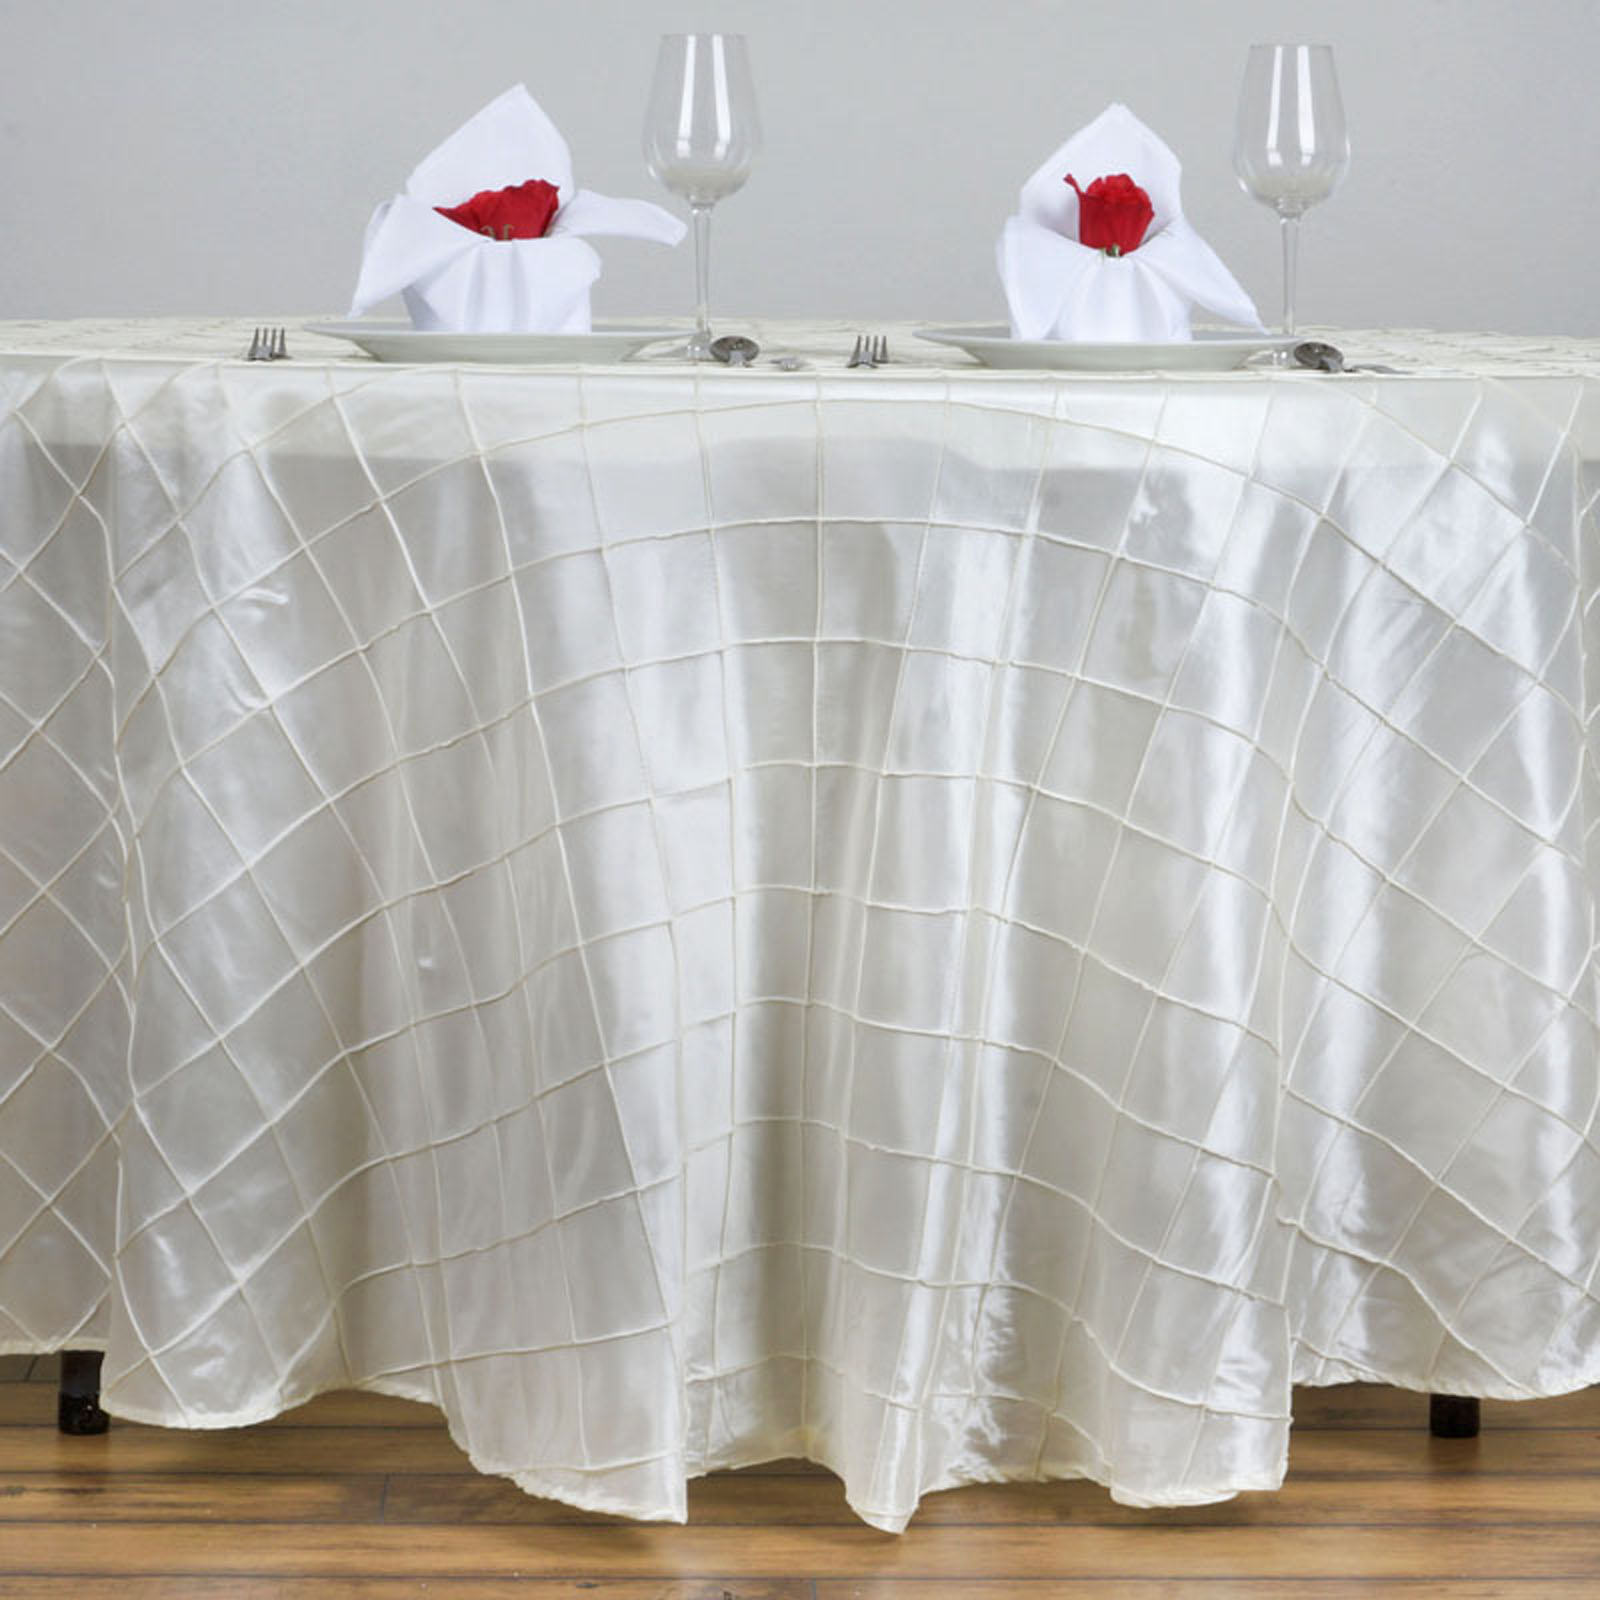 White round tablecloths cheap - 10 Pcs 120 034 Pintuck Fancy Round Tablecloths